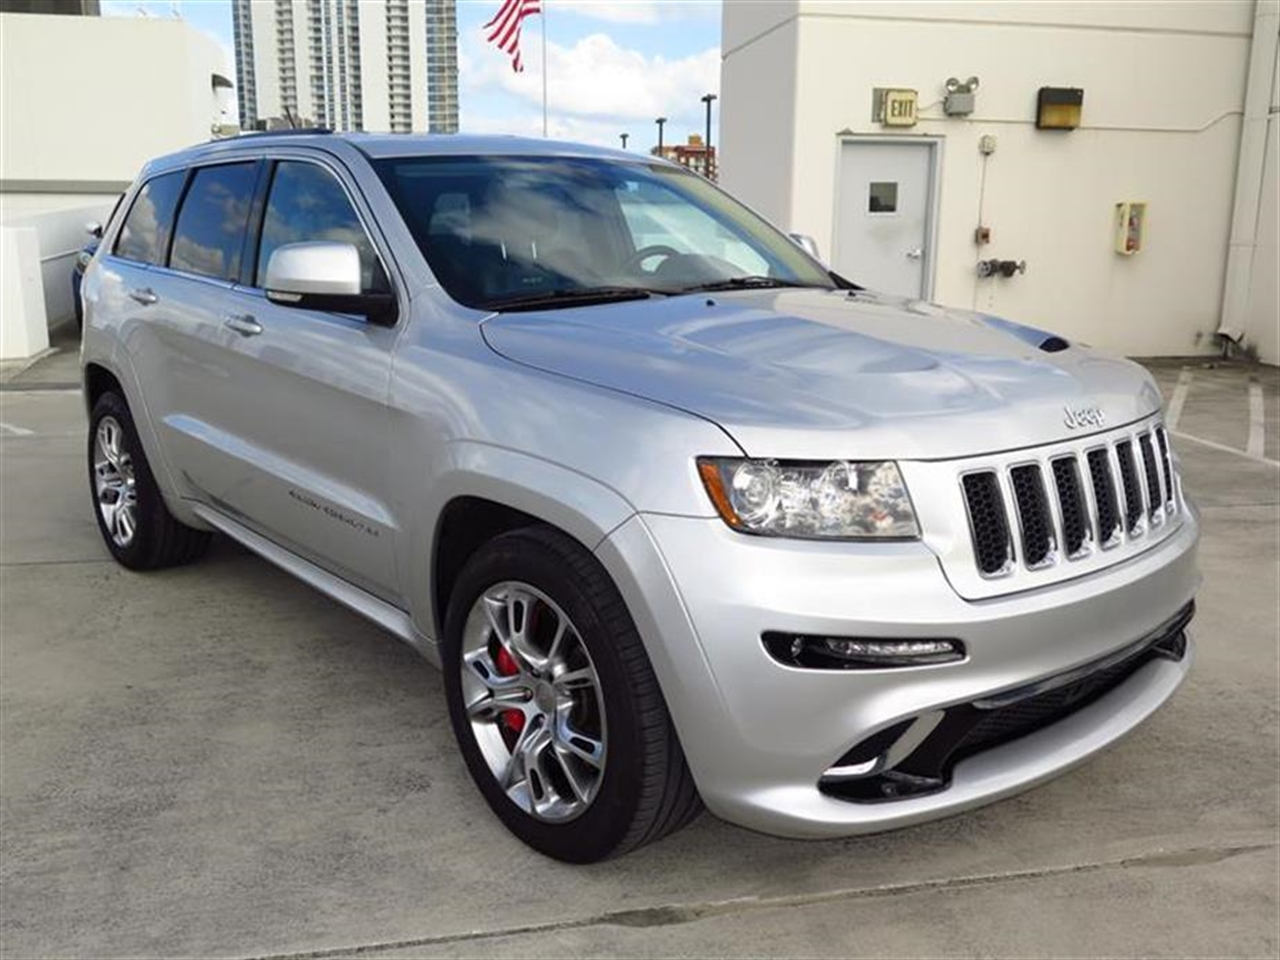 2012 JEEP GRAND CHEROKEE 4WD 4dr SRT8 17309 miles 115V pwr outlet 12-volt pwr outlet 12-volt rea